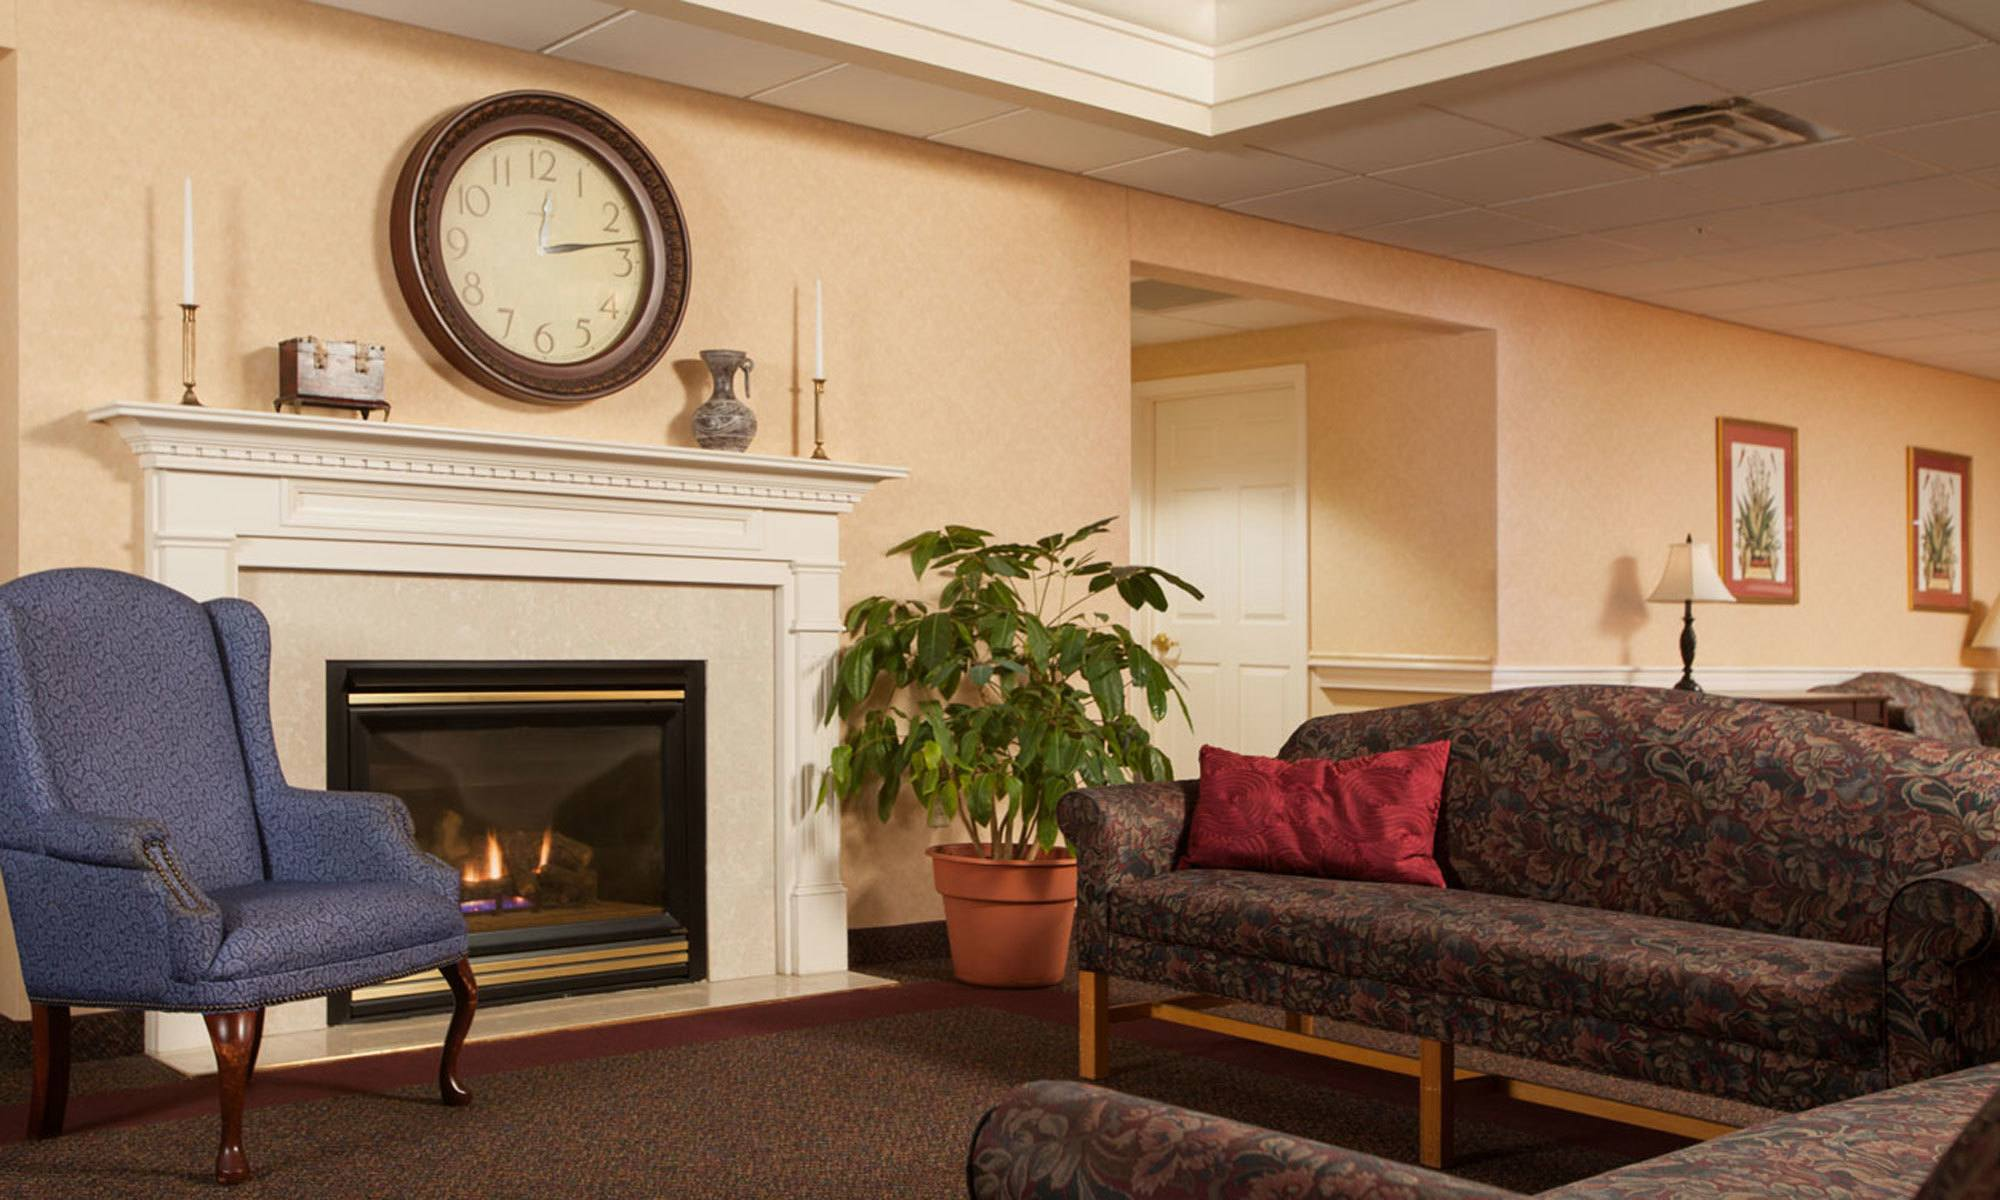 Premier assisted living care at White Oaks, in Lawton, MI